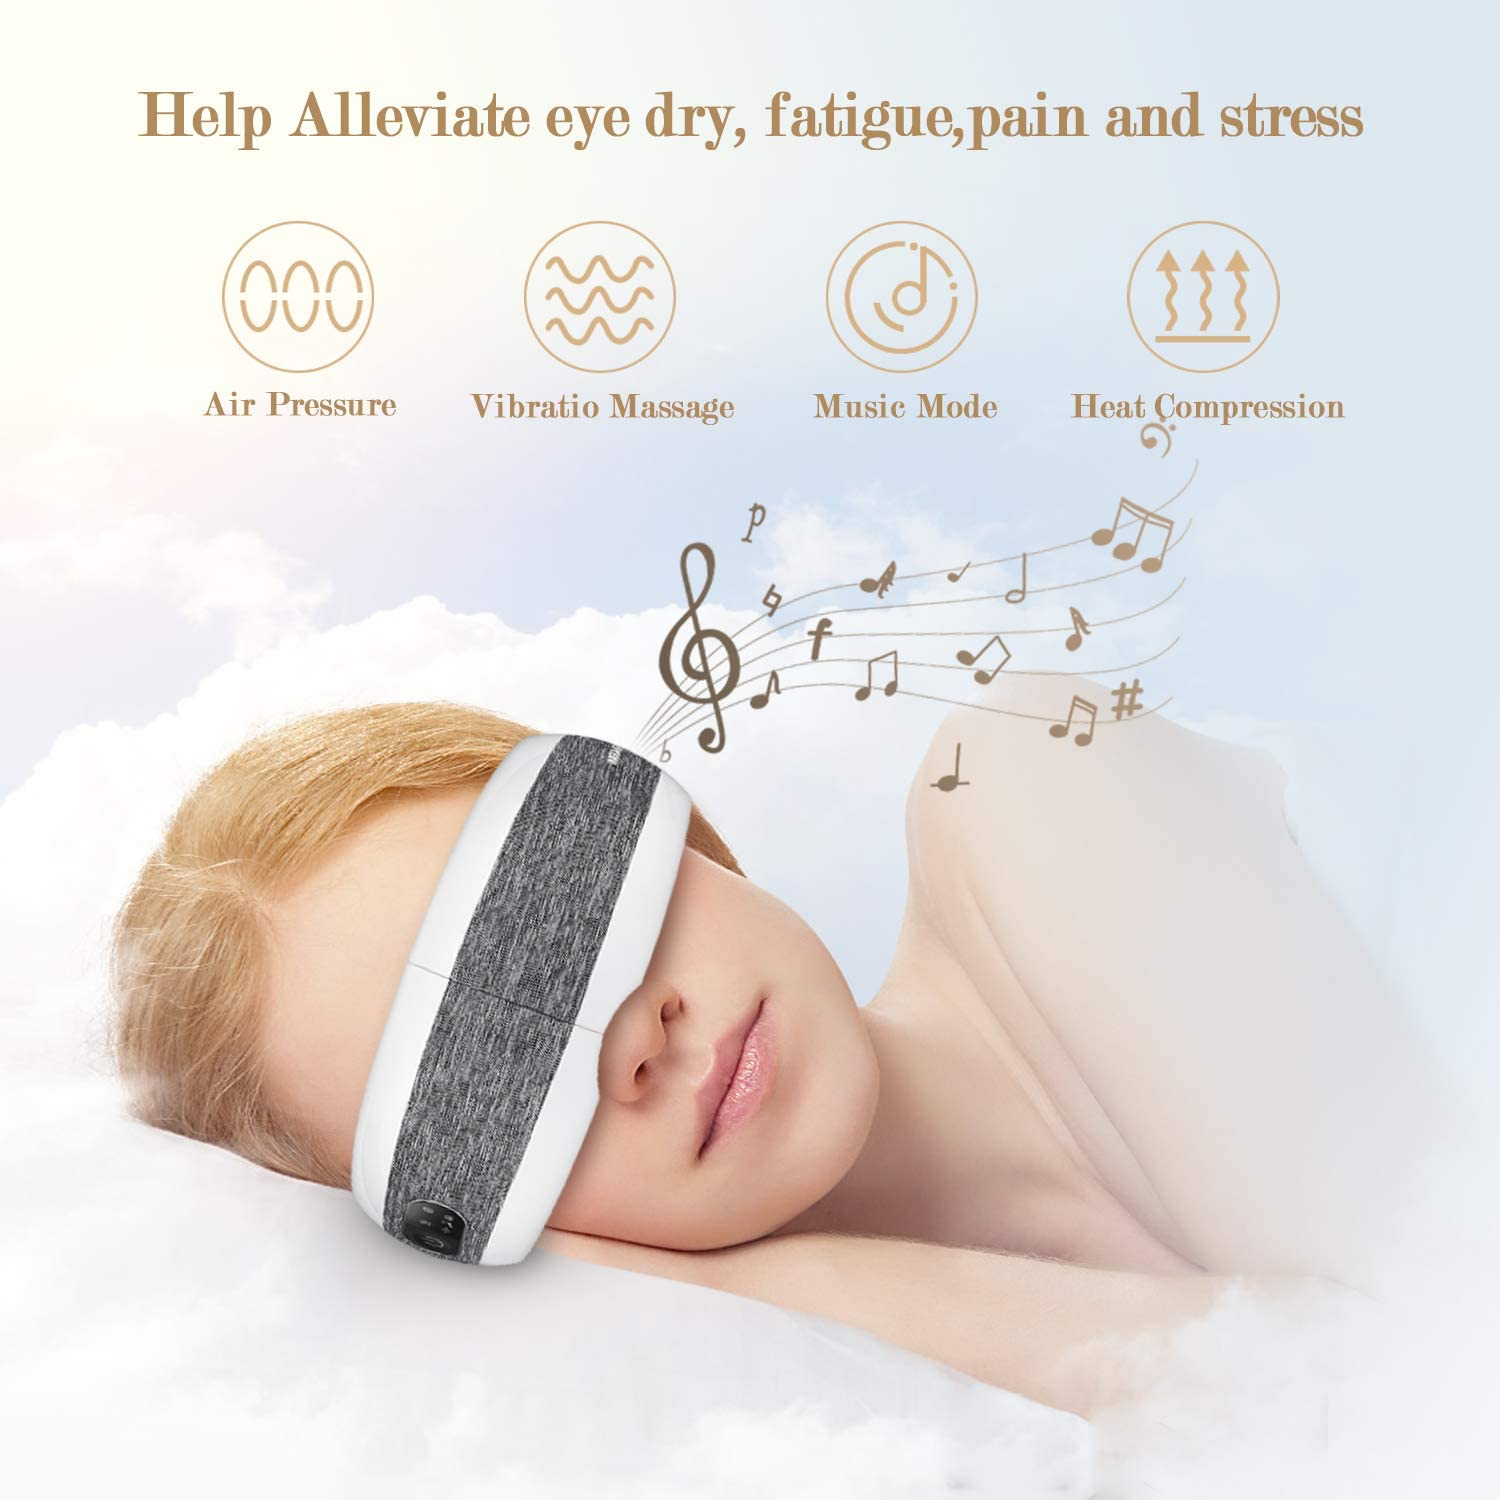 Blonde woman sleeping with eye massager on, text showing different massage techniques